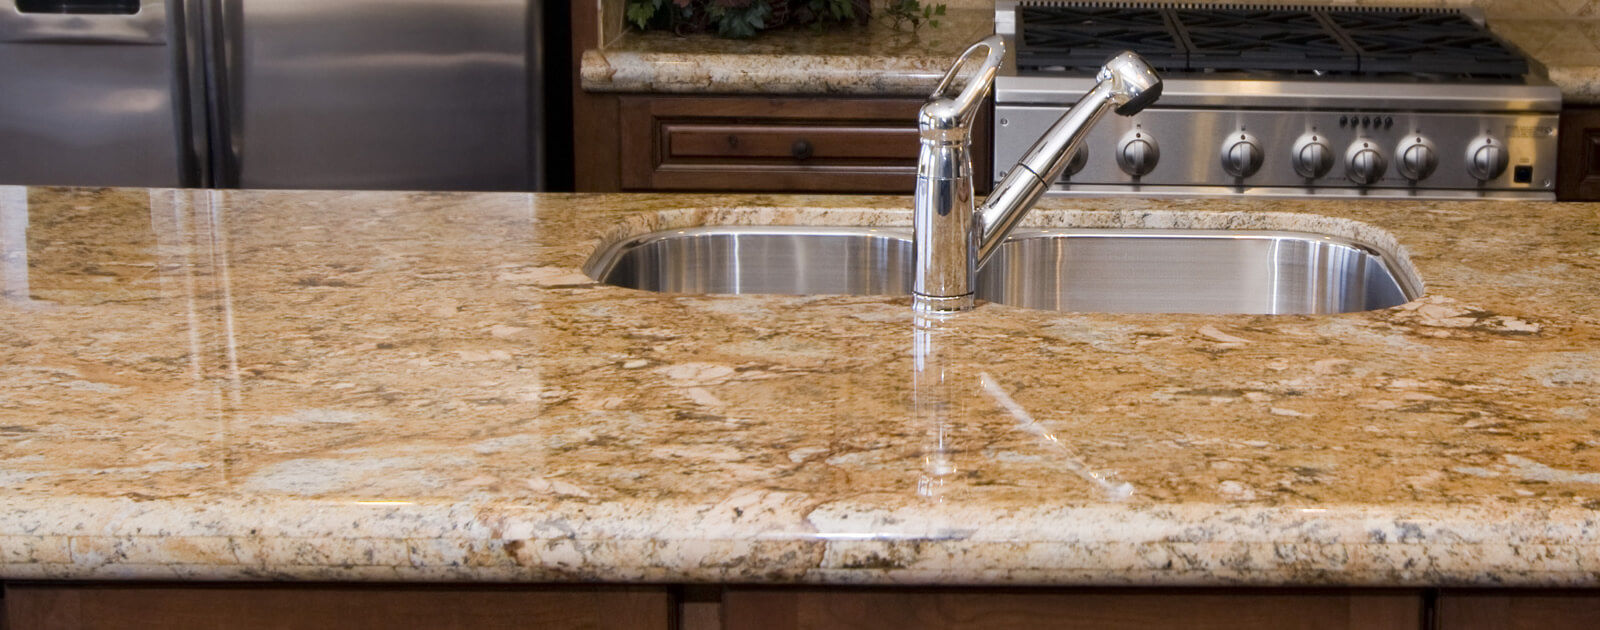 choice popular this a in granite view gallery material stunning countertops for kitchen countertop